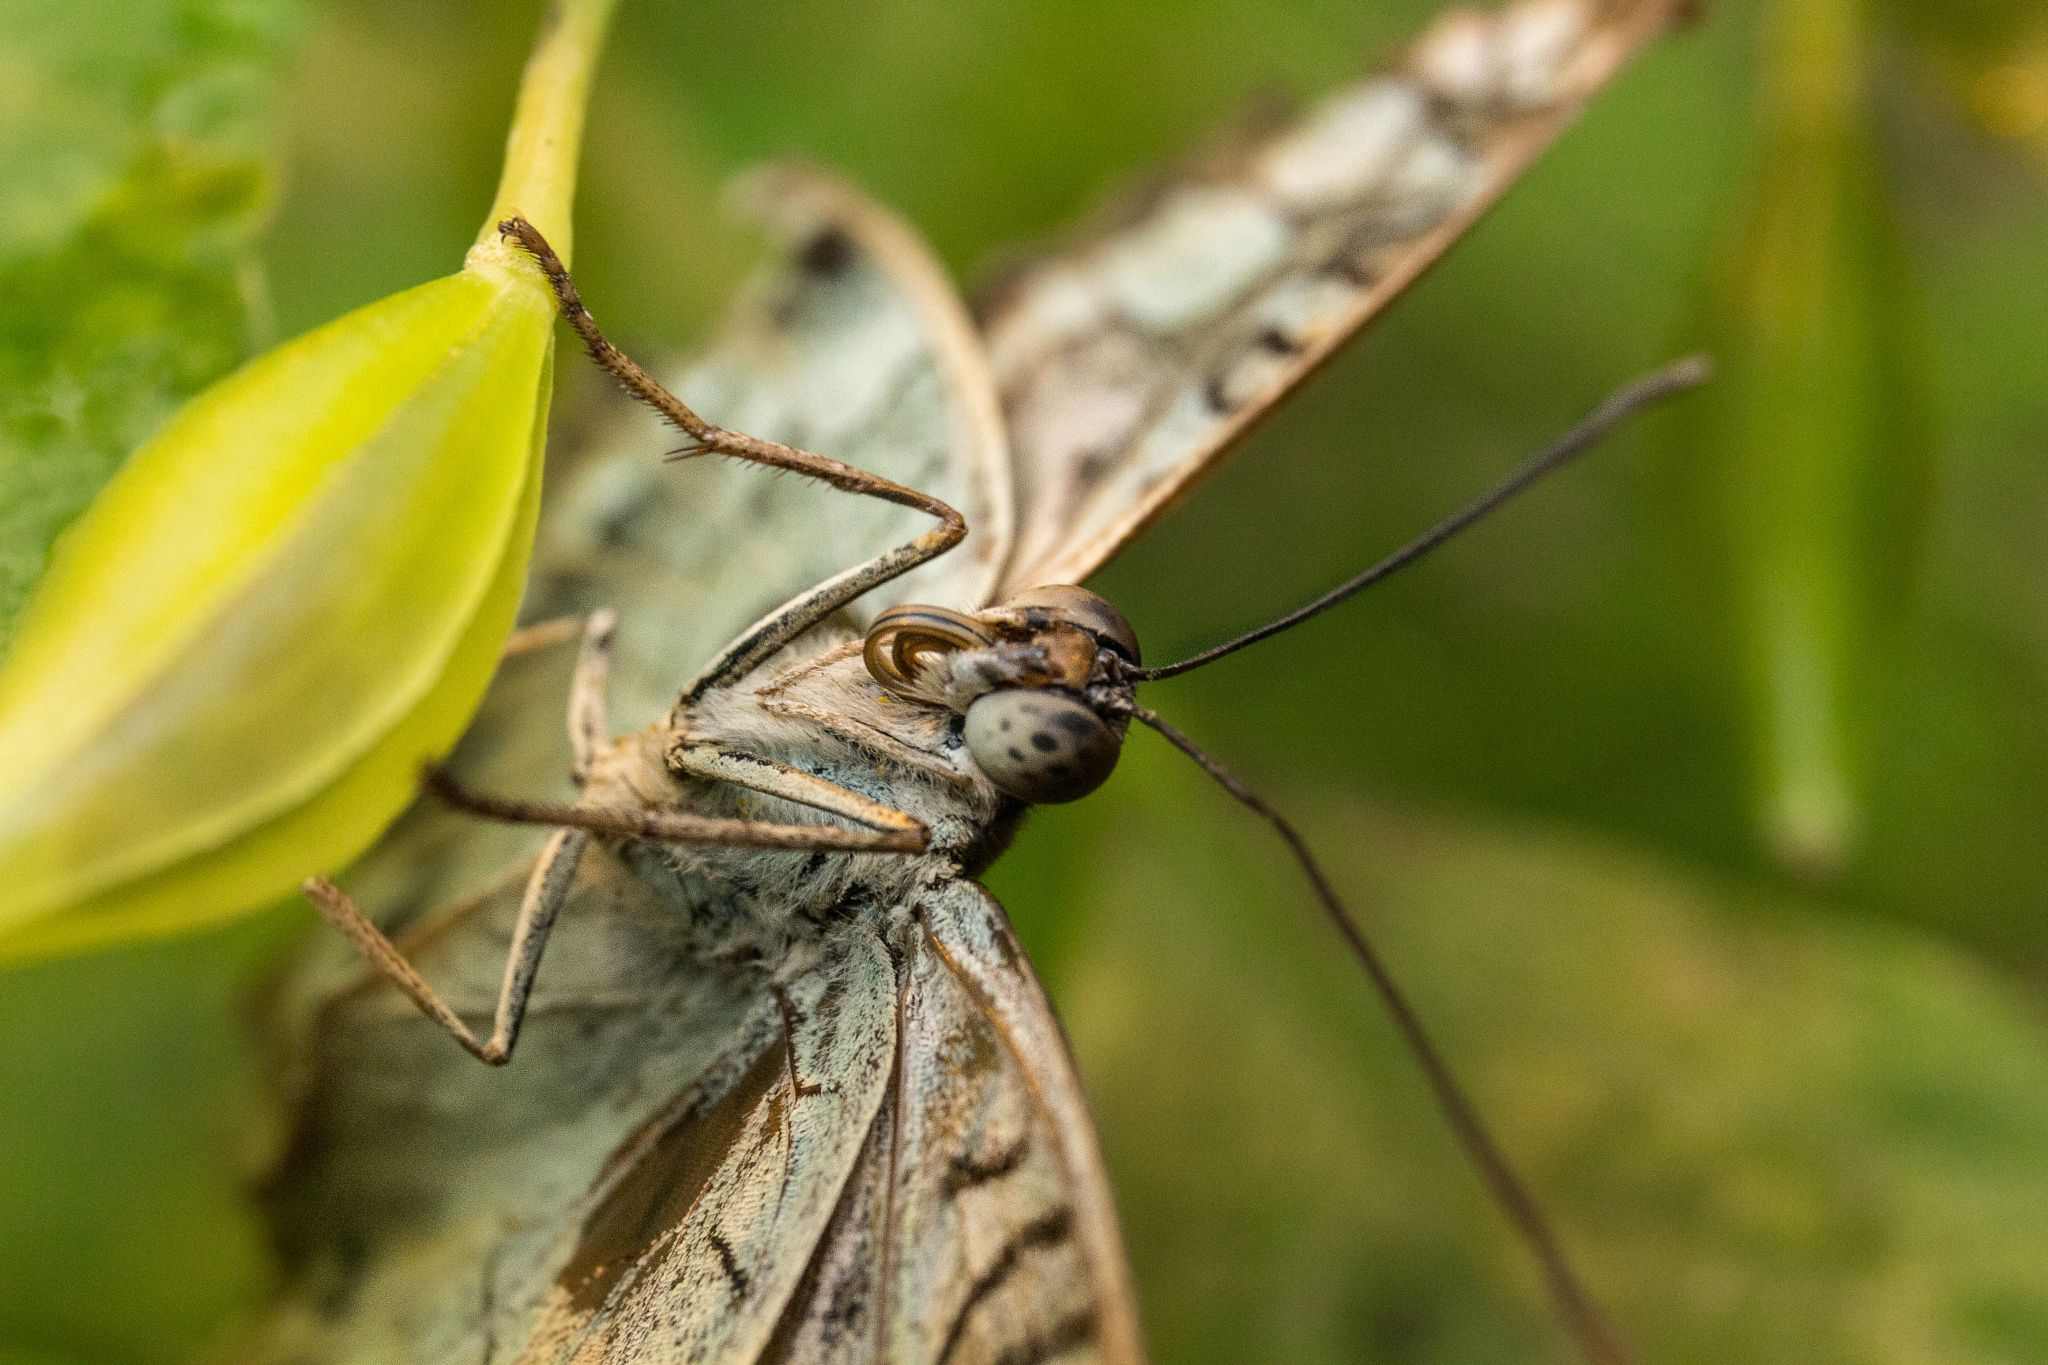 The butterfly nap by Alexandre Surel on 500px